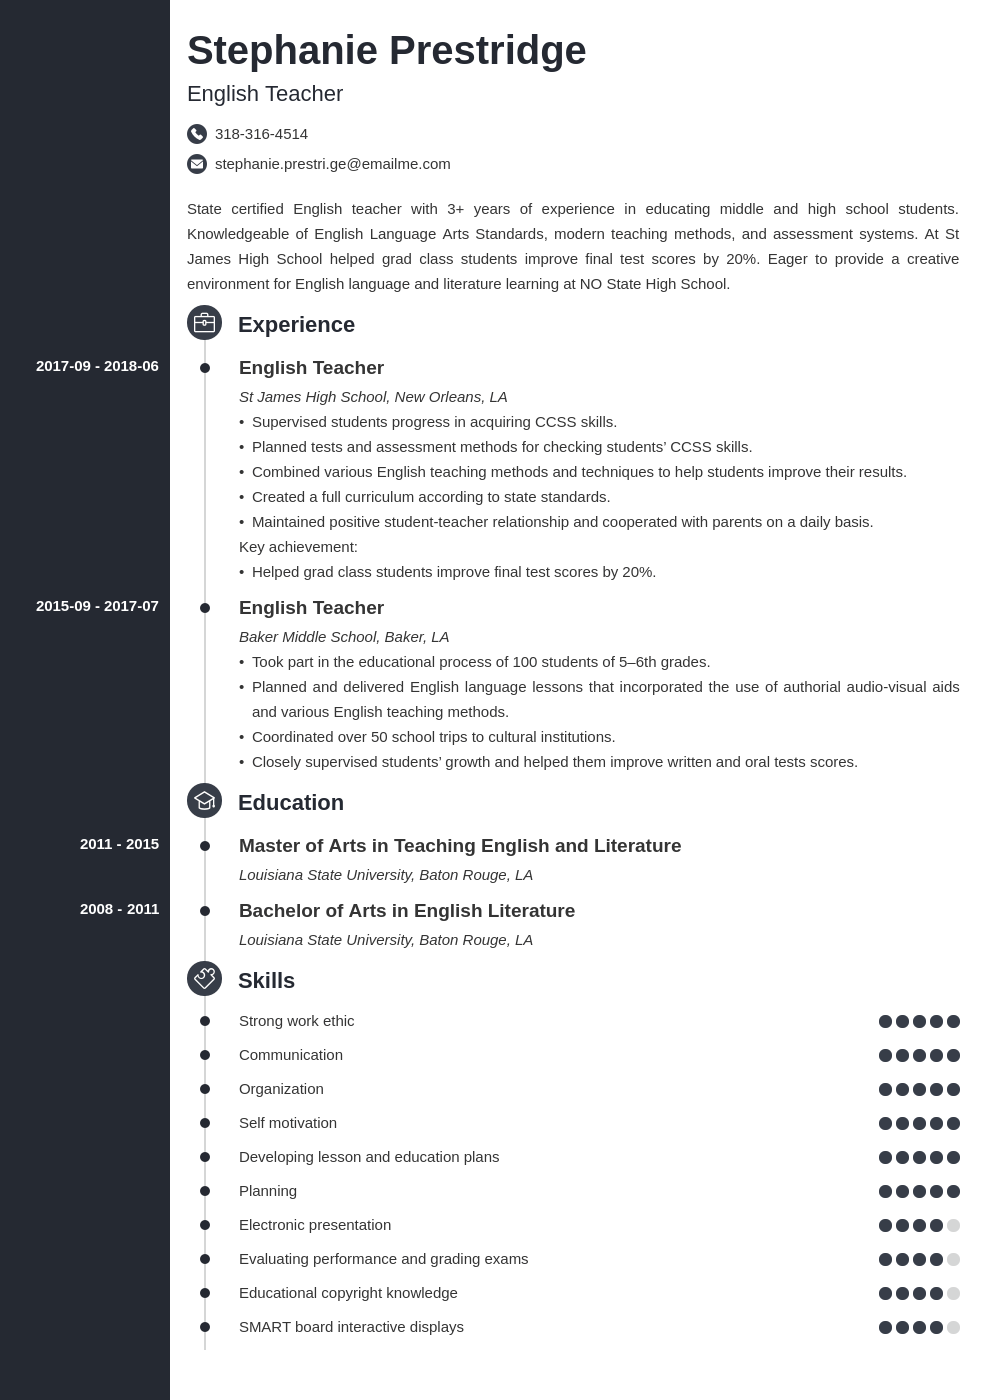 English Teacher Resume Sample With Job Description Skills